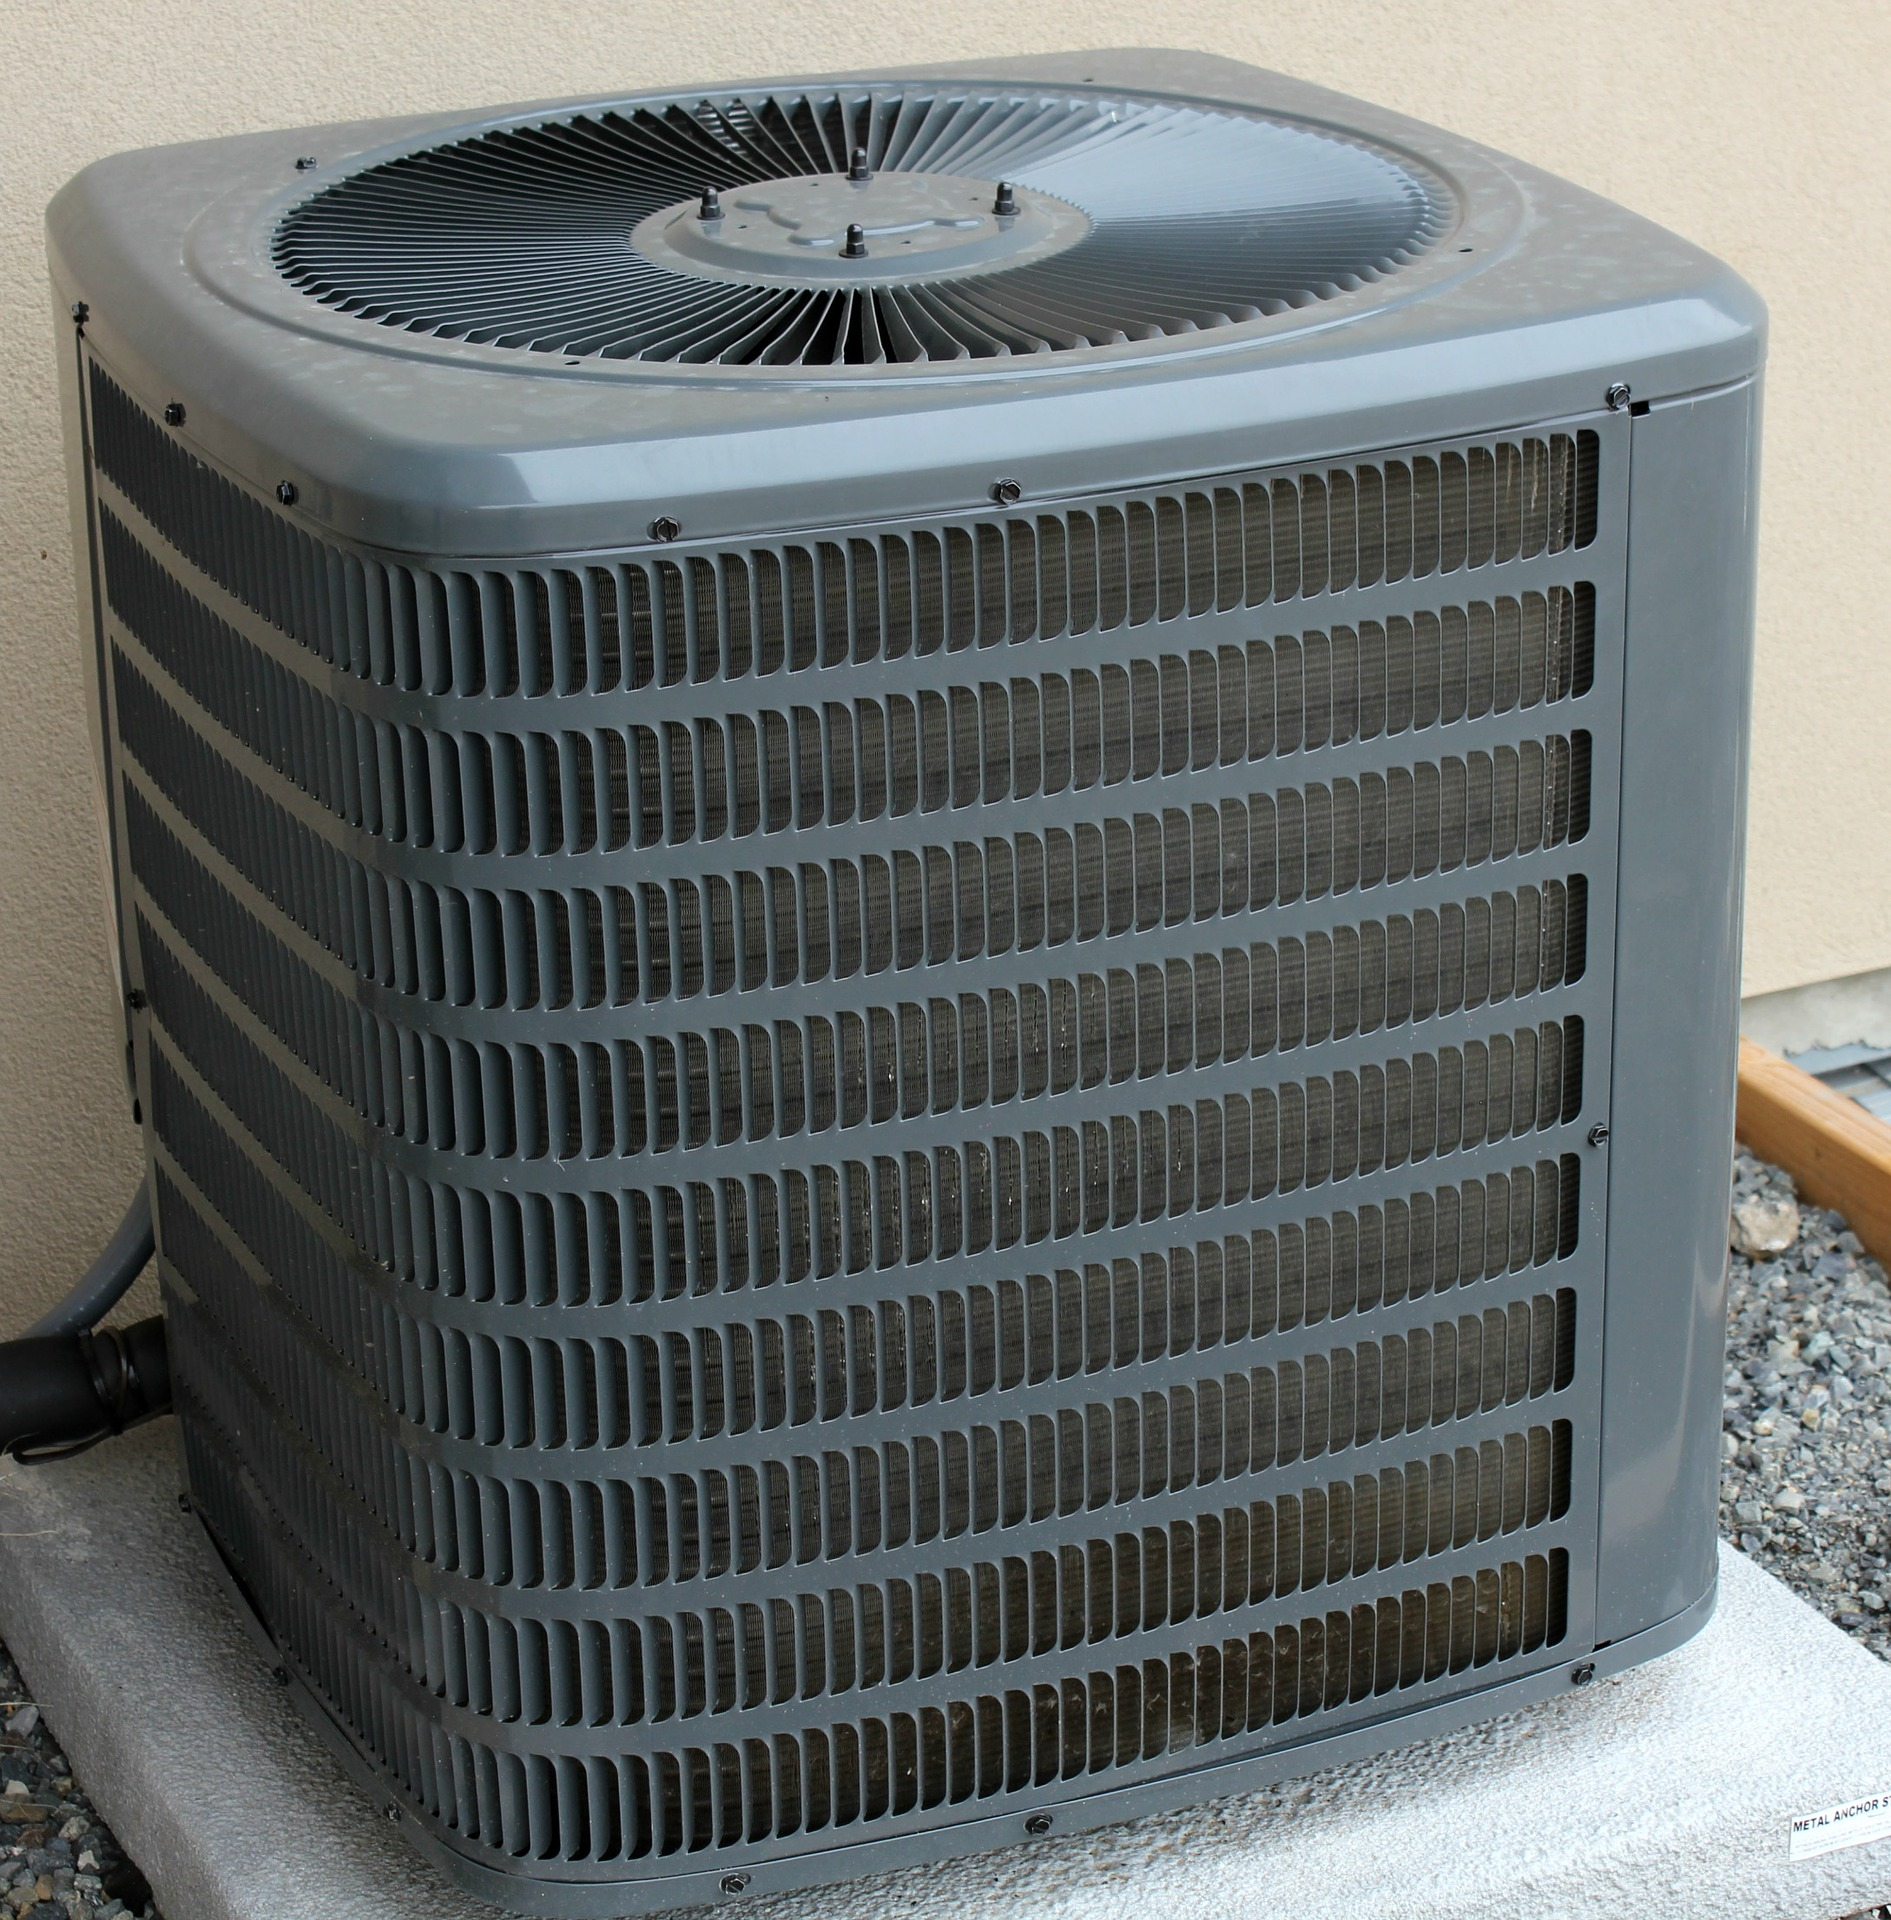 Is Central Air Better Than Ductless?